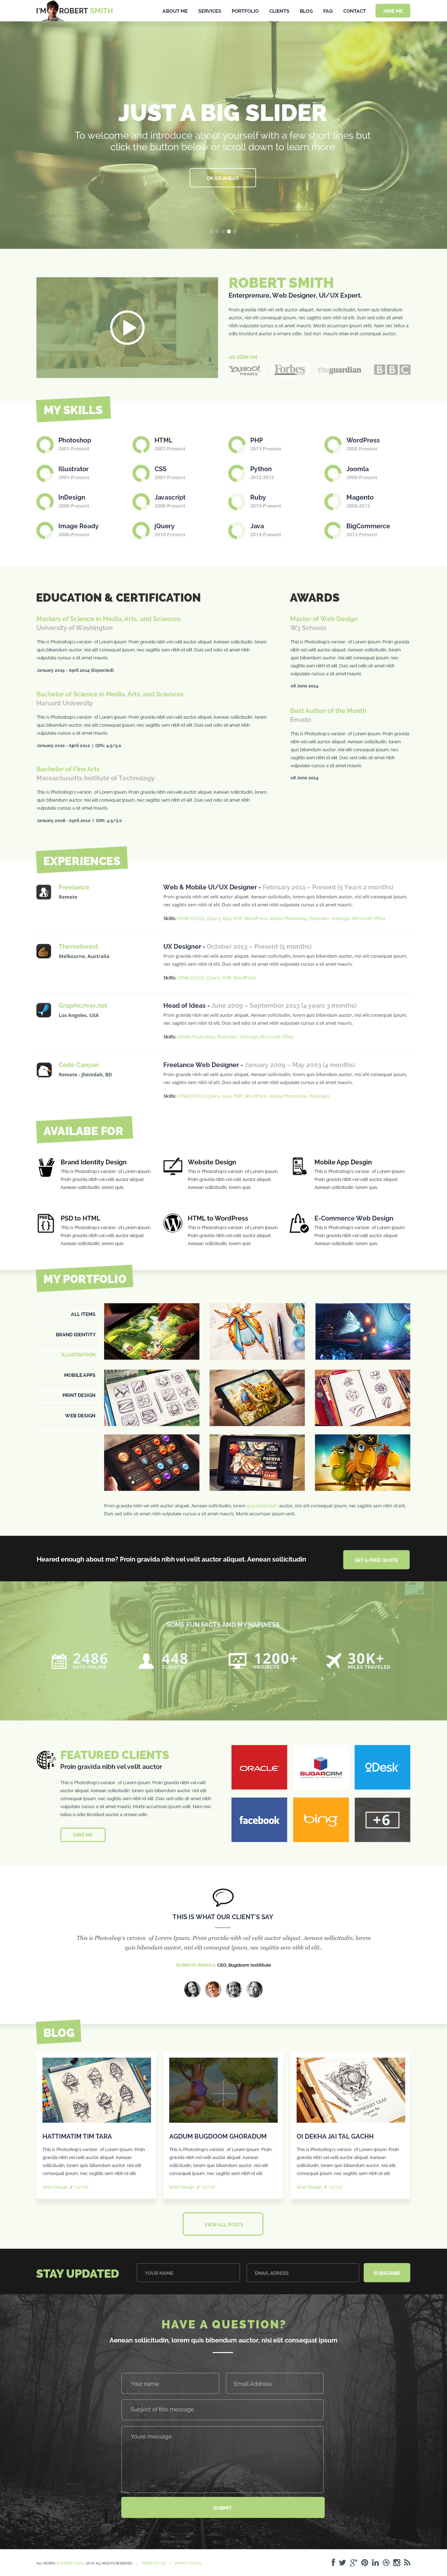 25+ Best Free Resume / CV Templates PSD One page resume